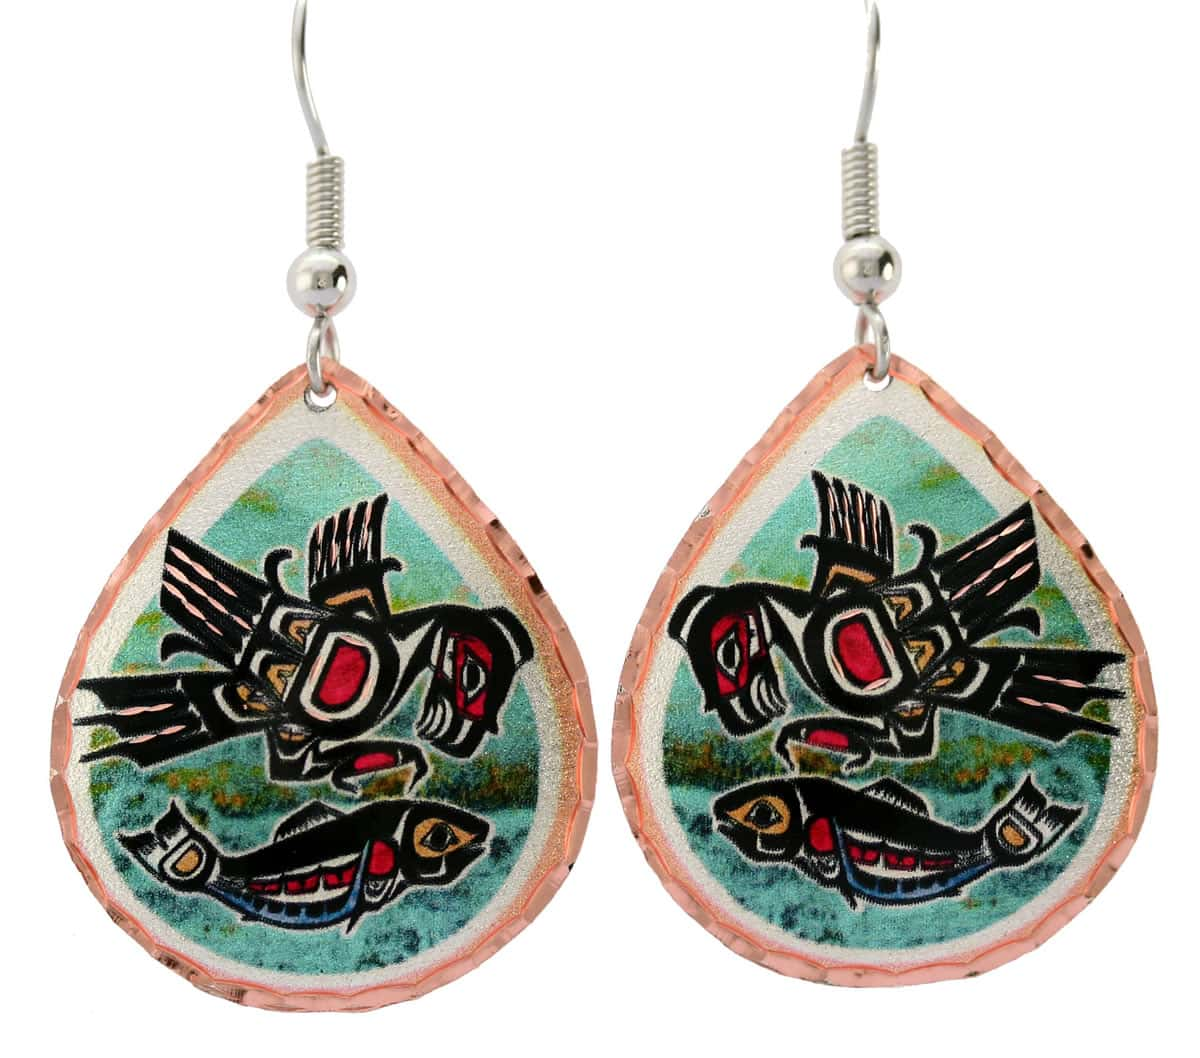 Northwest Native eagle and salmon earrings with surgical steel hypoallergenic ear wires